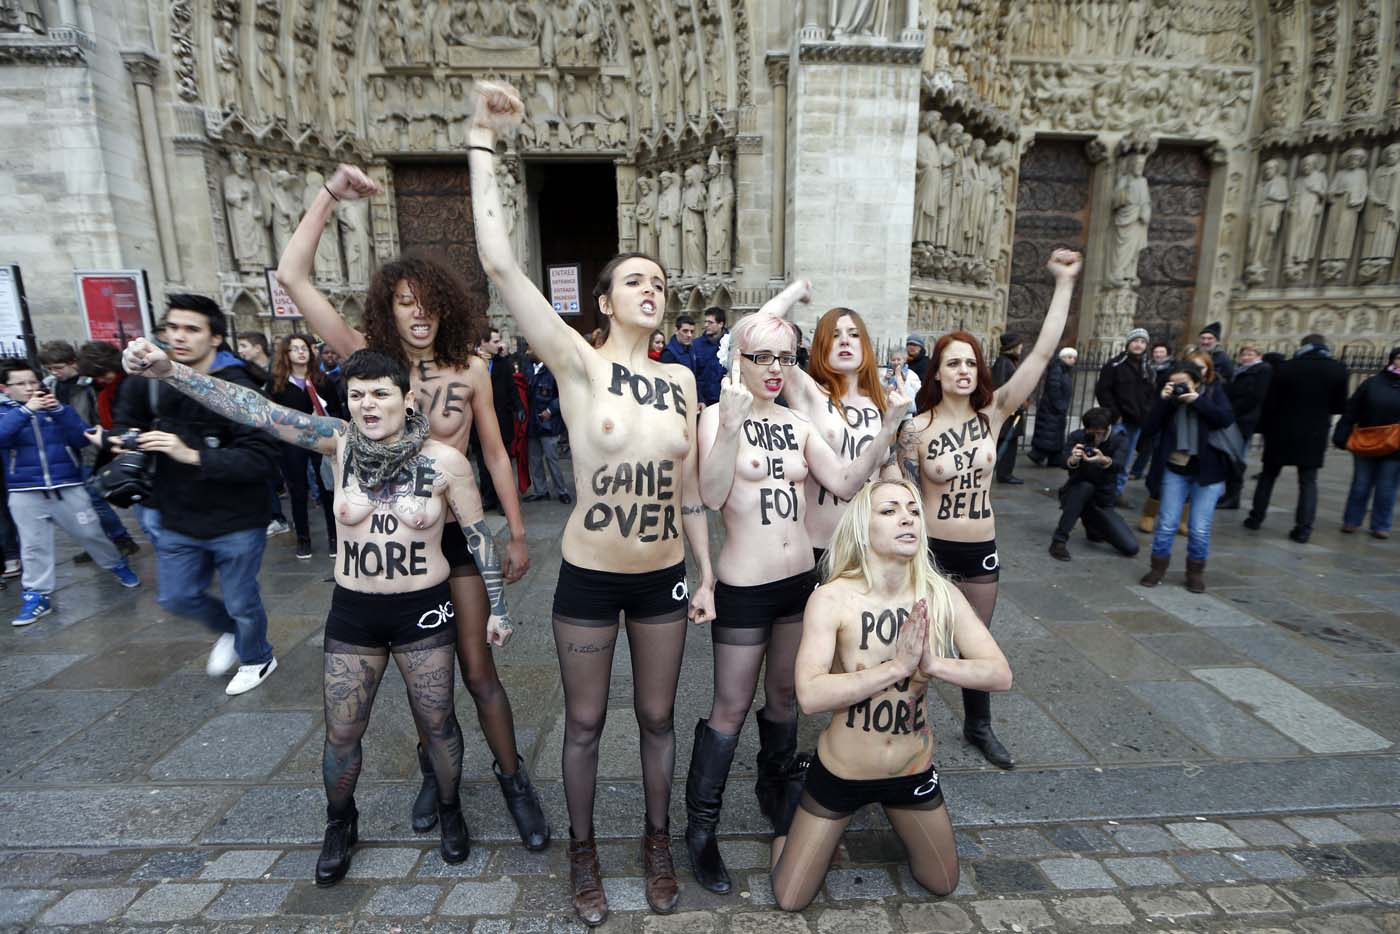 Activists from the women's rights organisation Femen shout slogans outside Notre-Dame de Paris Cathedral  in Paris